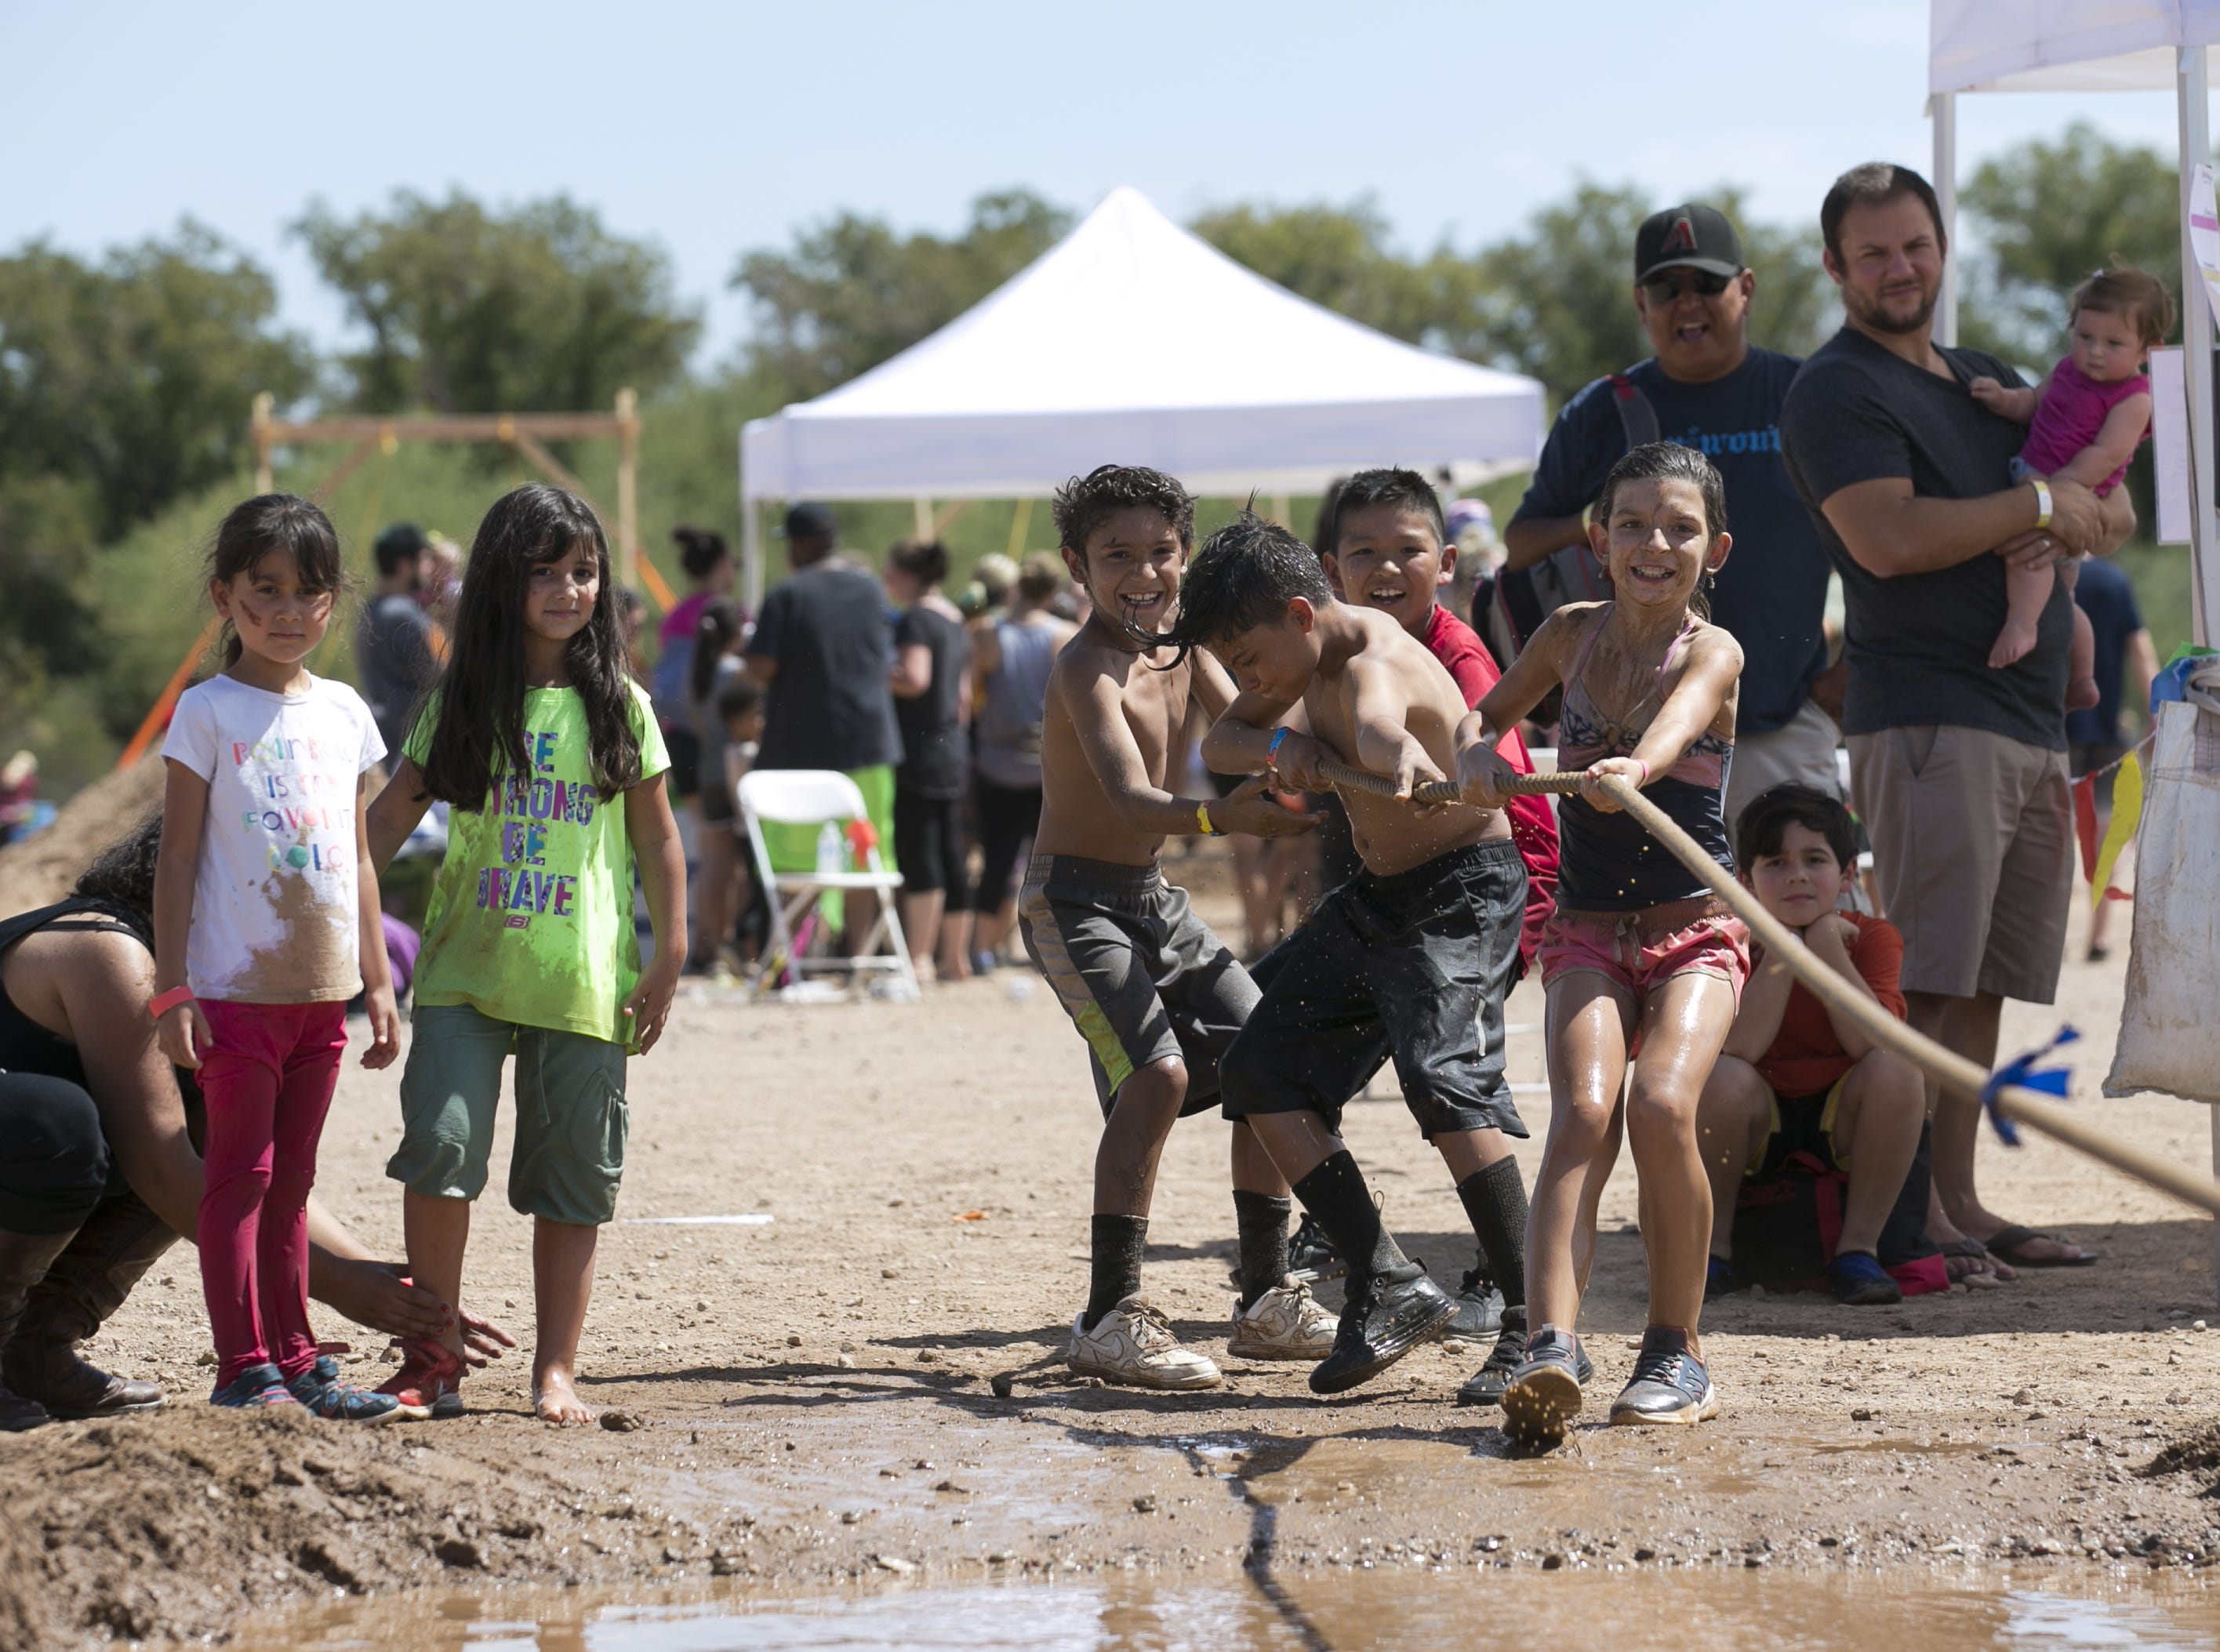 Kids play tug-of-war at the third annual Messy Fest in Queen Creek on Saturday, Sept. 15, 2018.